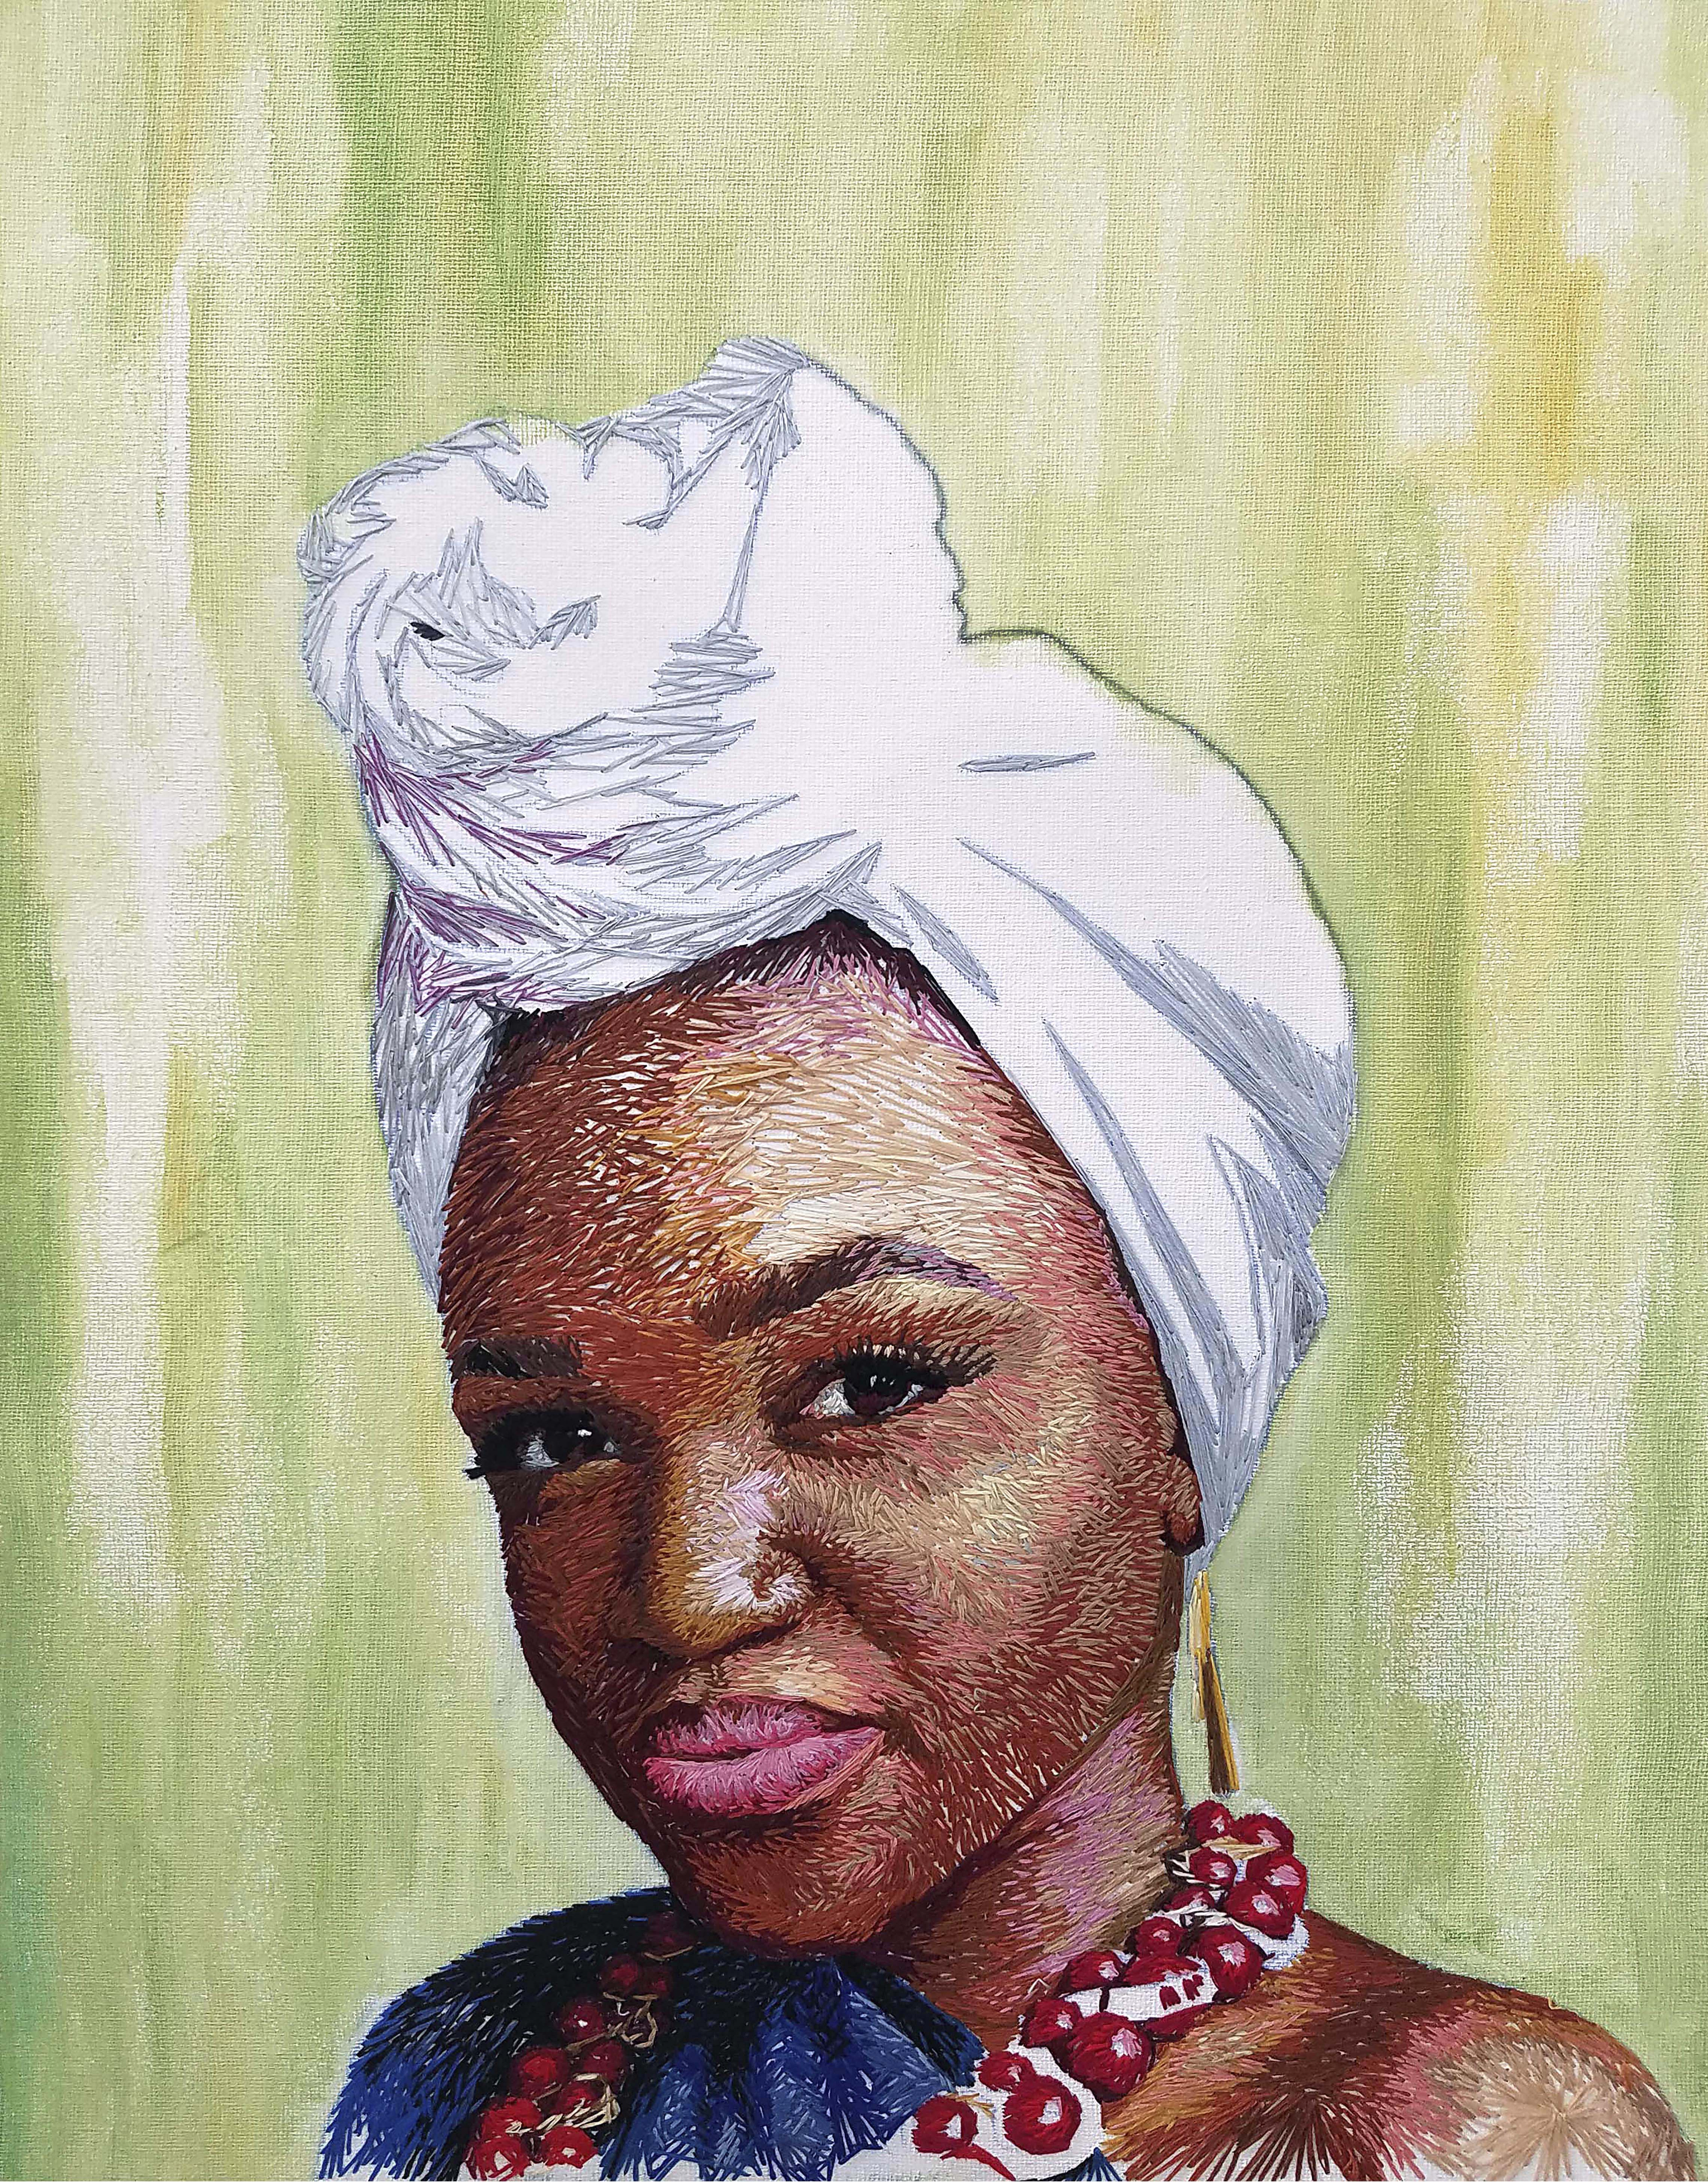 Image of the first hand embroidered portrait completed by Nneka Jones